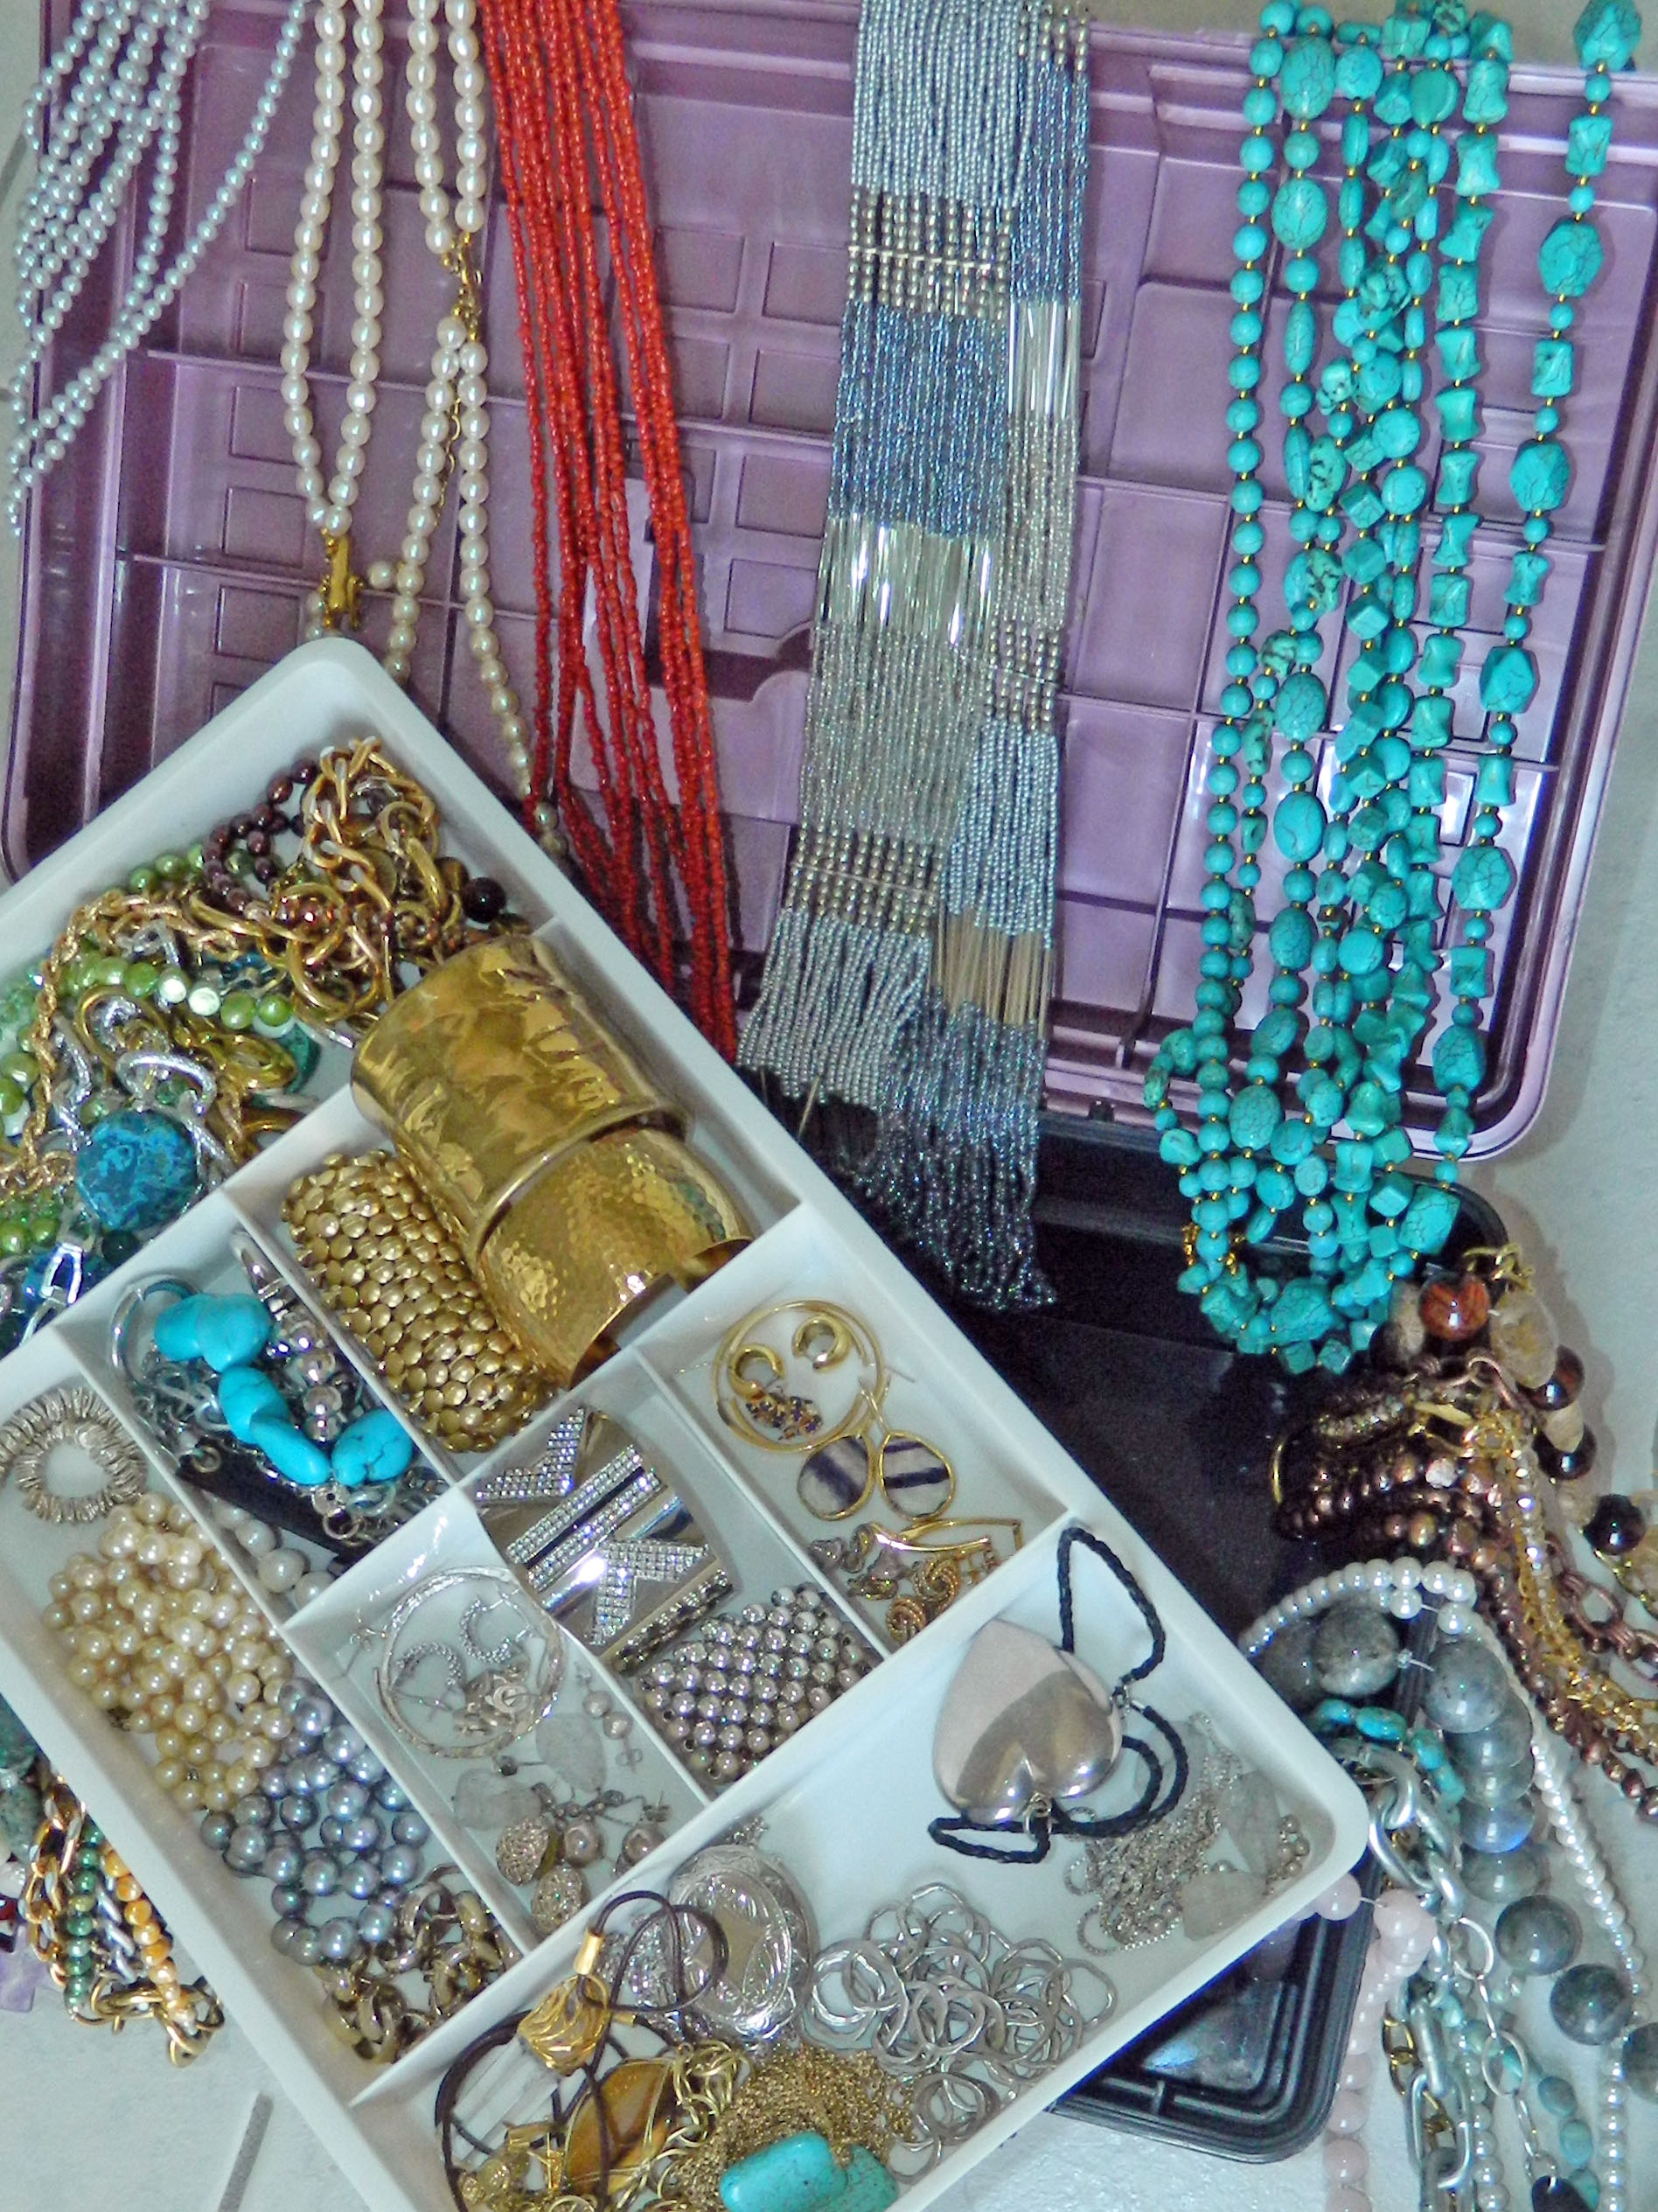 A tackle box makes a great place to store jewelry